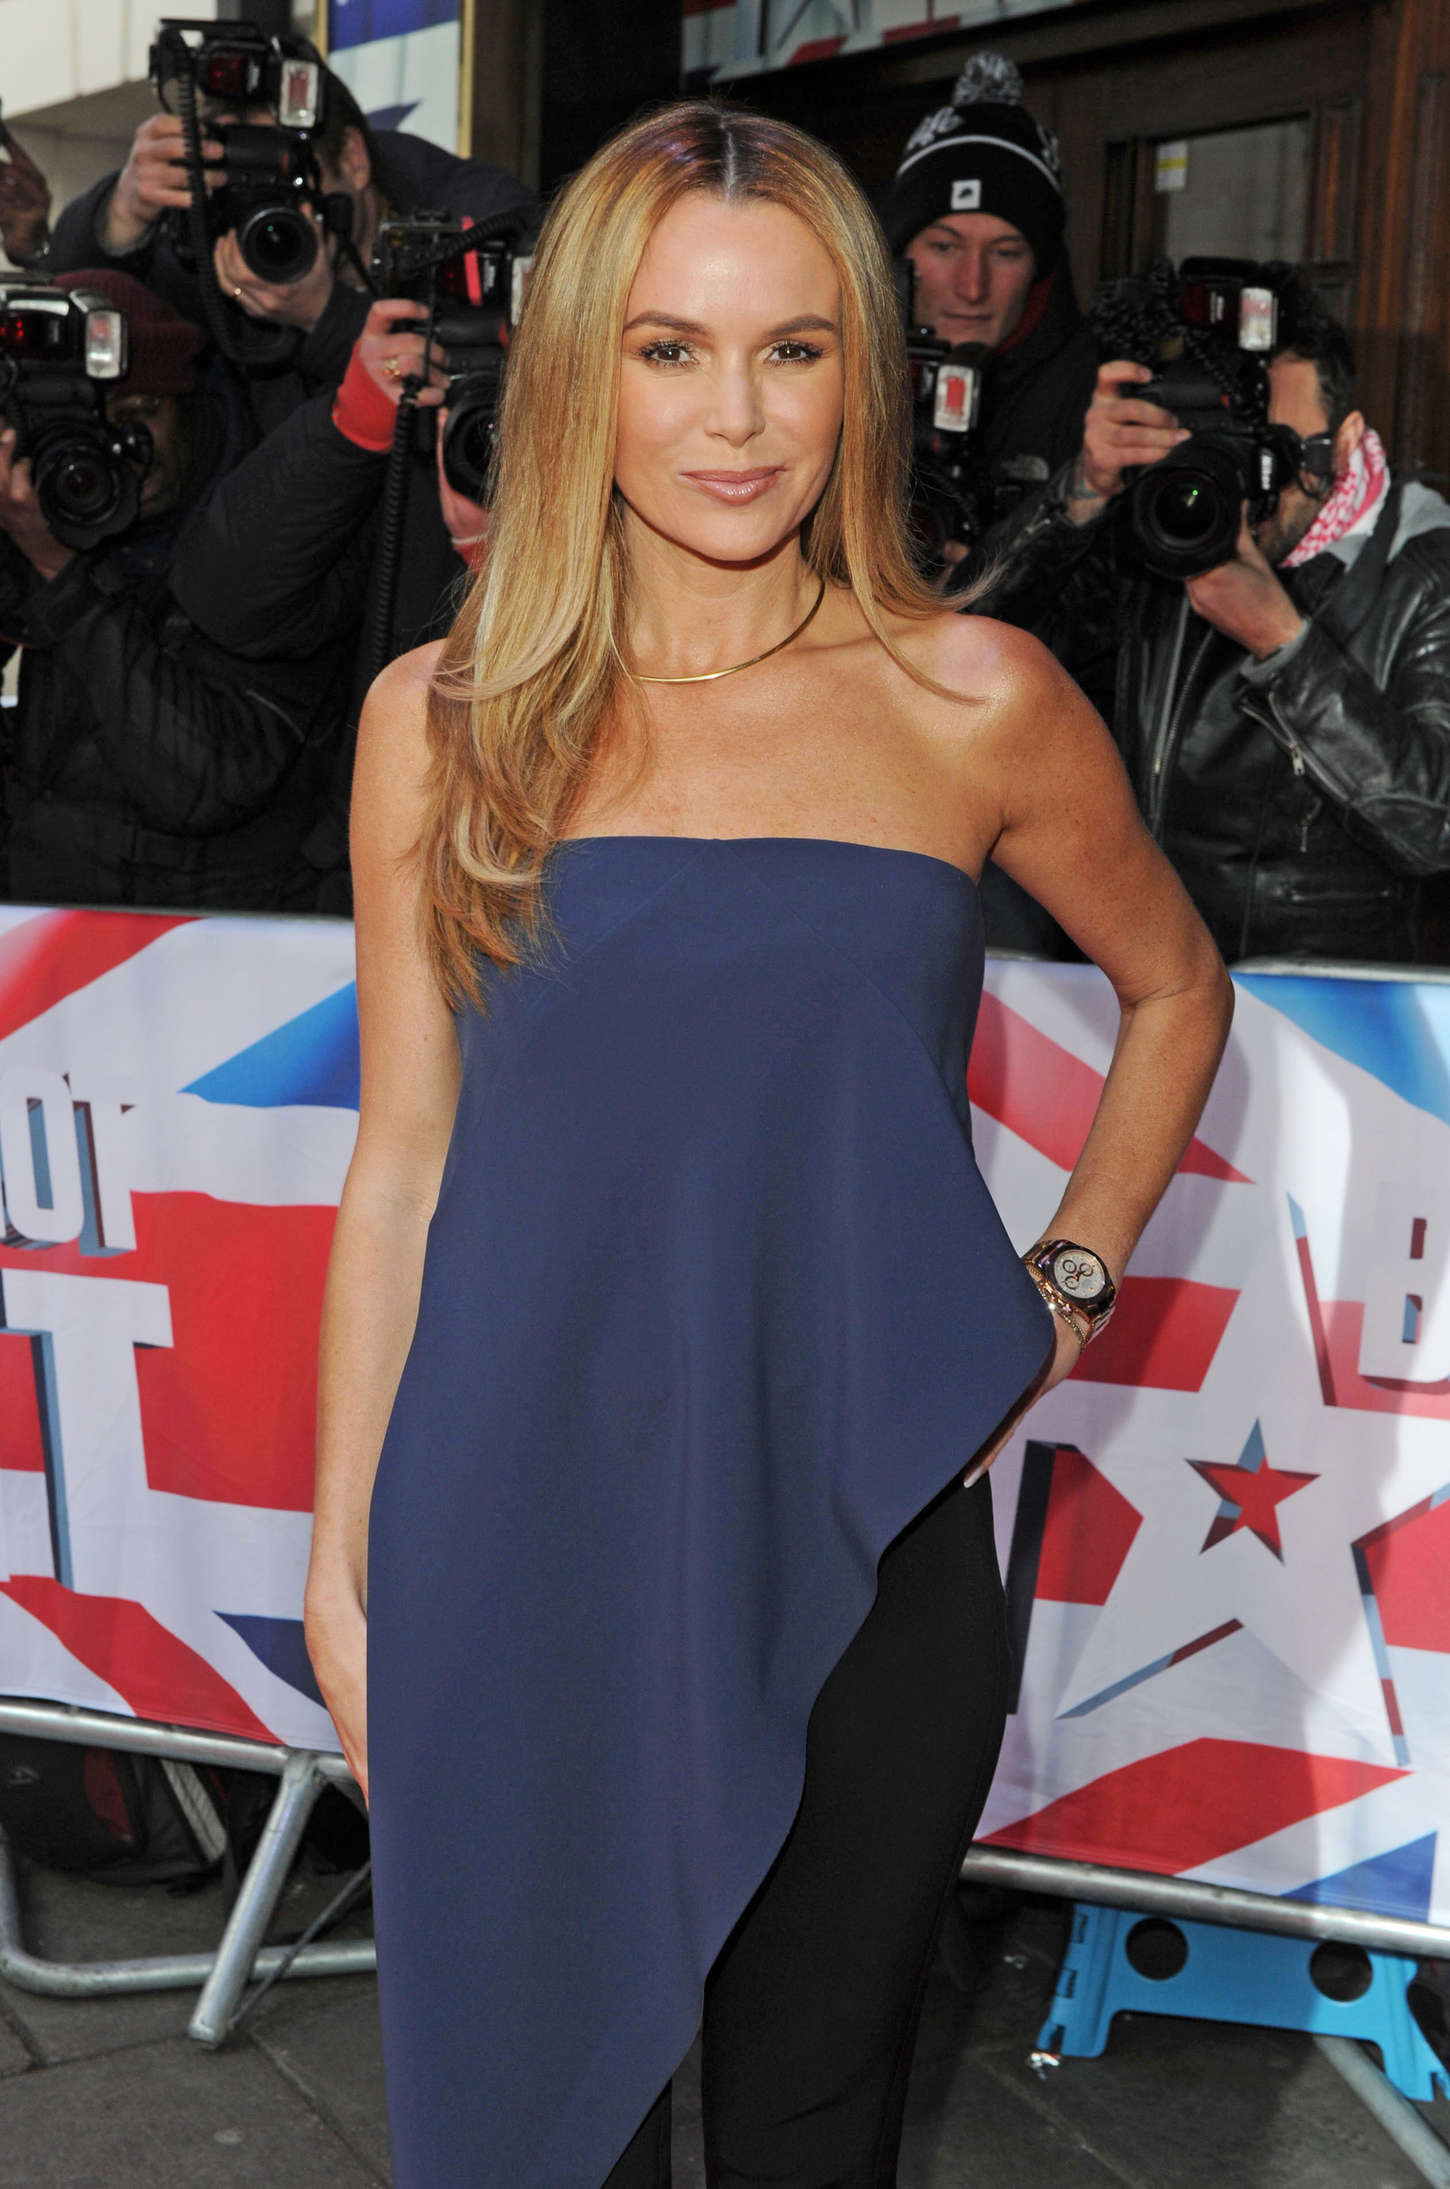 Amanda Holden - Britain's Got Talent Auditions in London